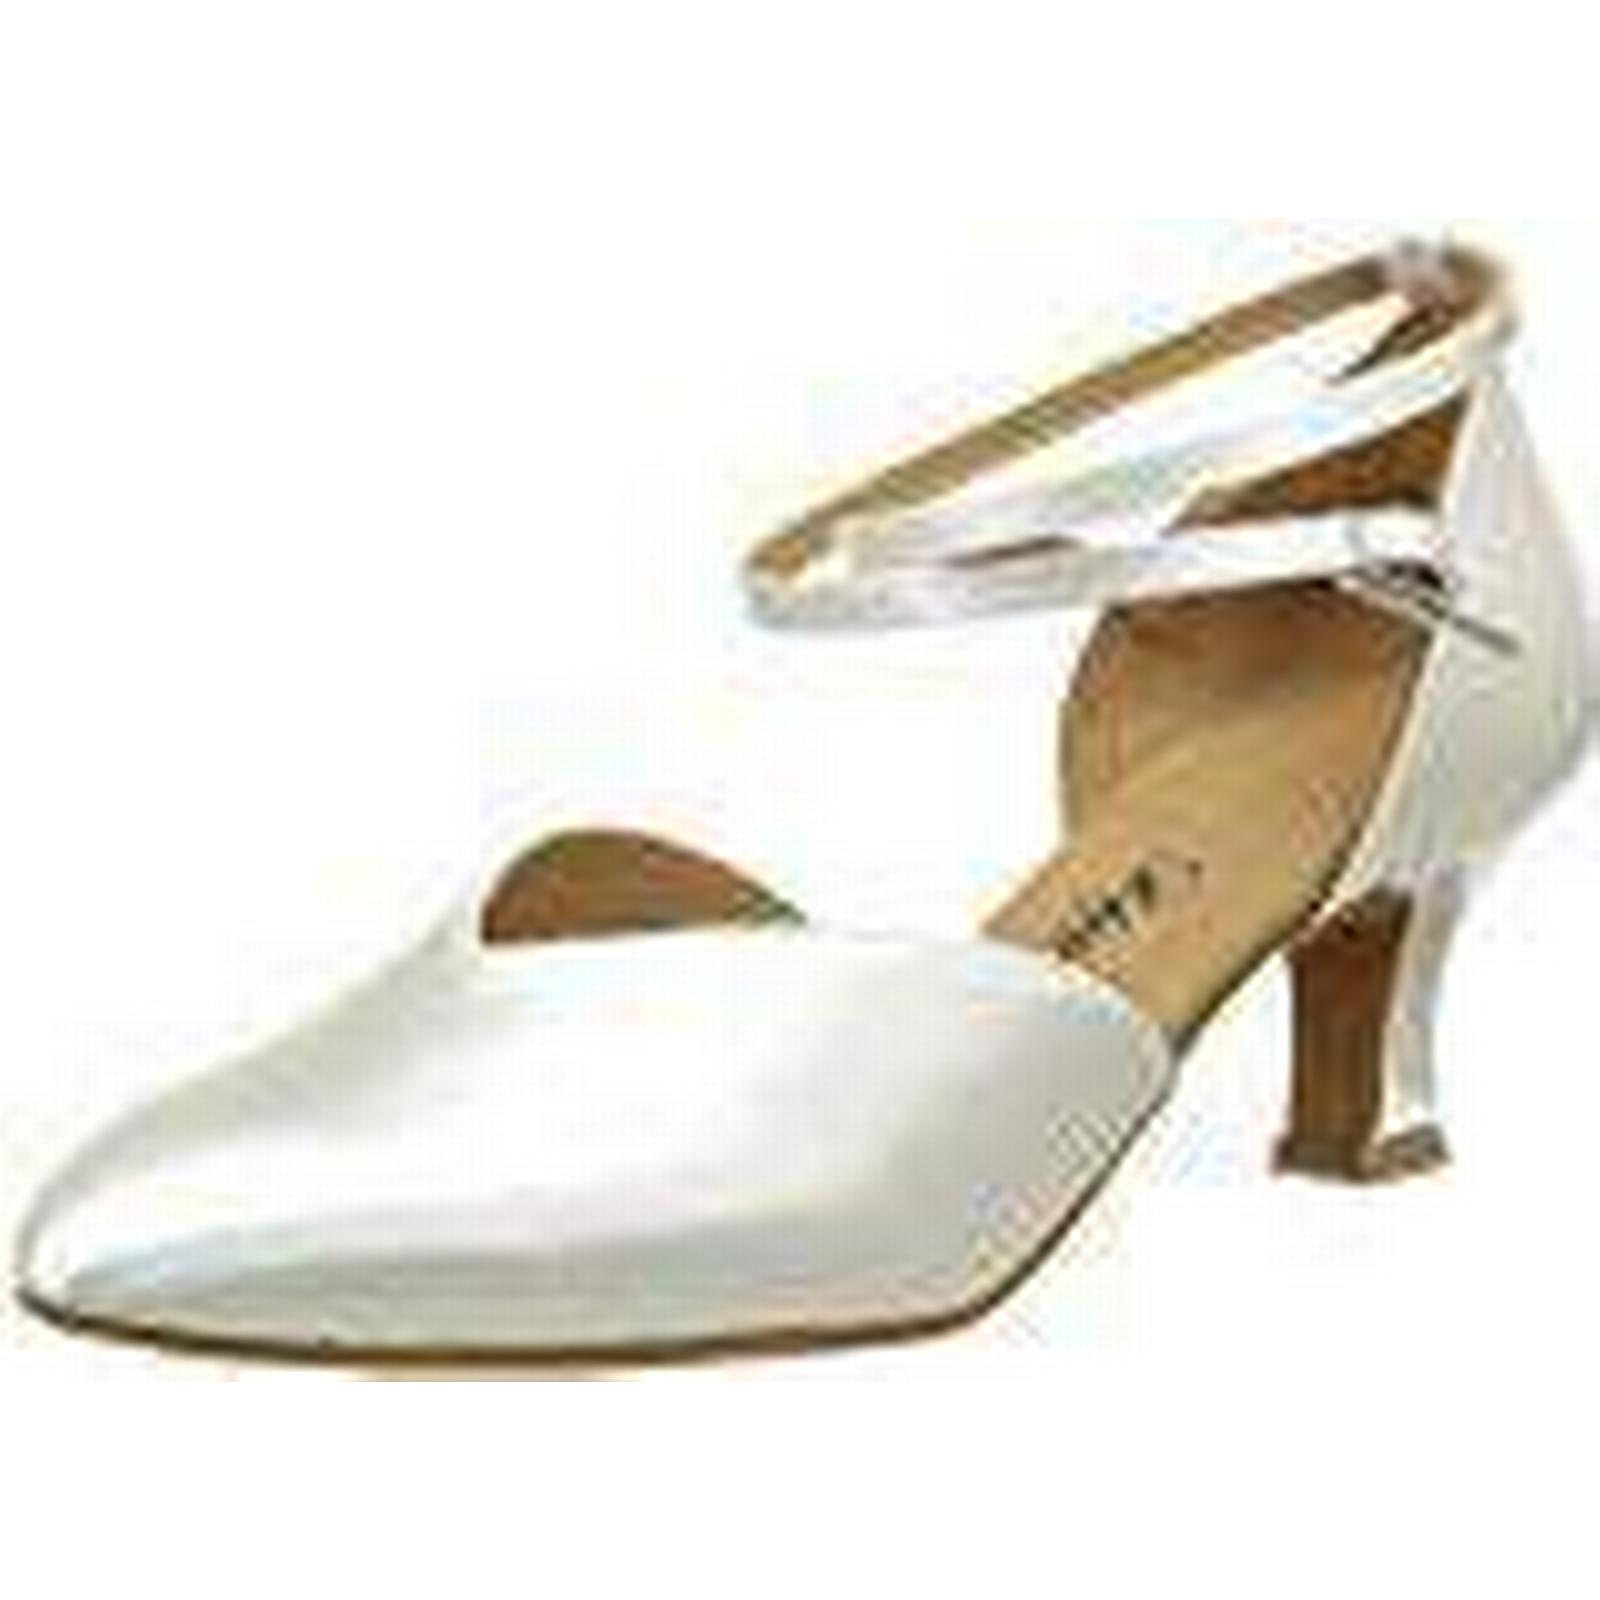 Diamant 105-068-092, UK Women's Ballroom Shoes, White (Weiß), 4.5 UK 105-068-092, (37 1/3 EU) 386cf2